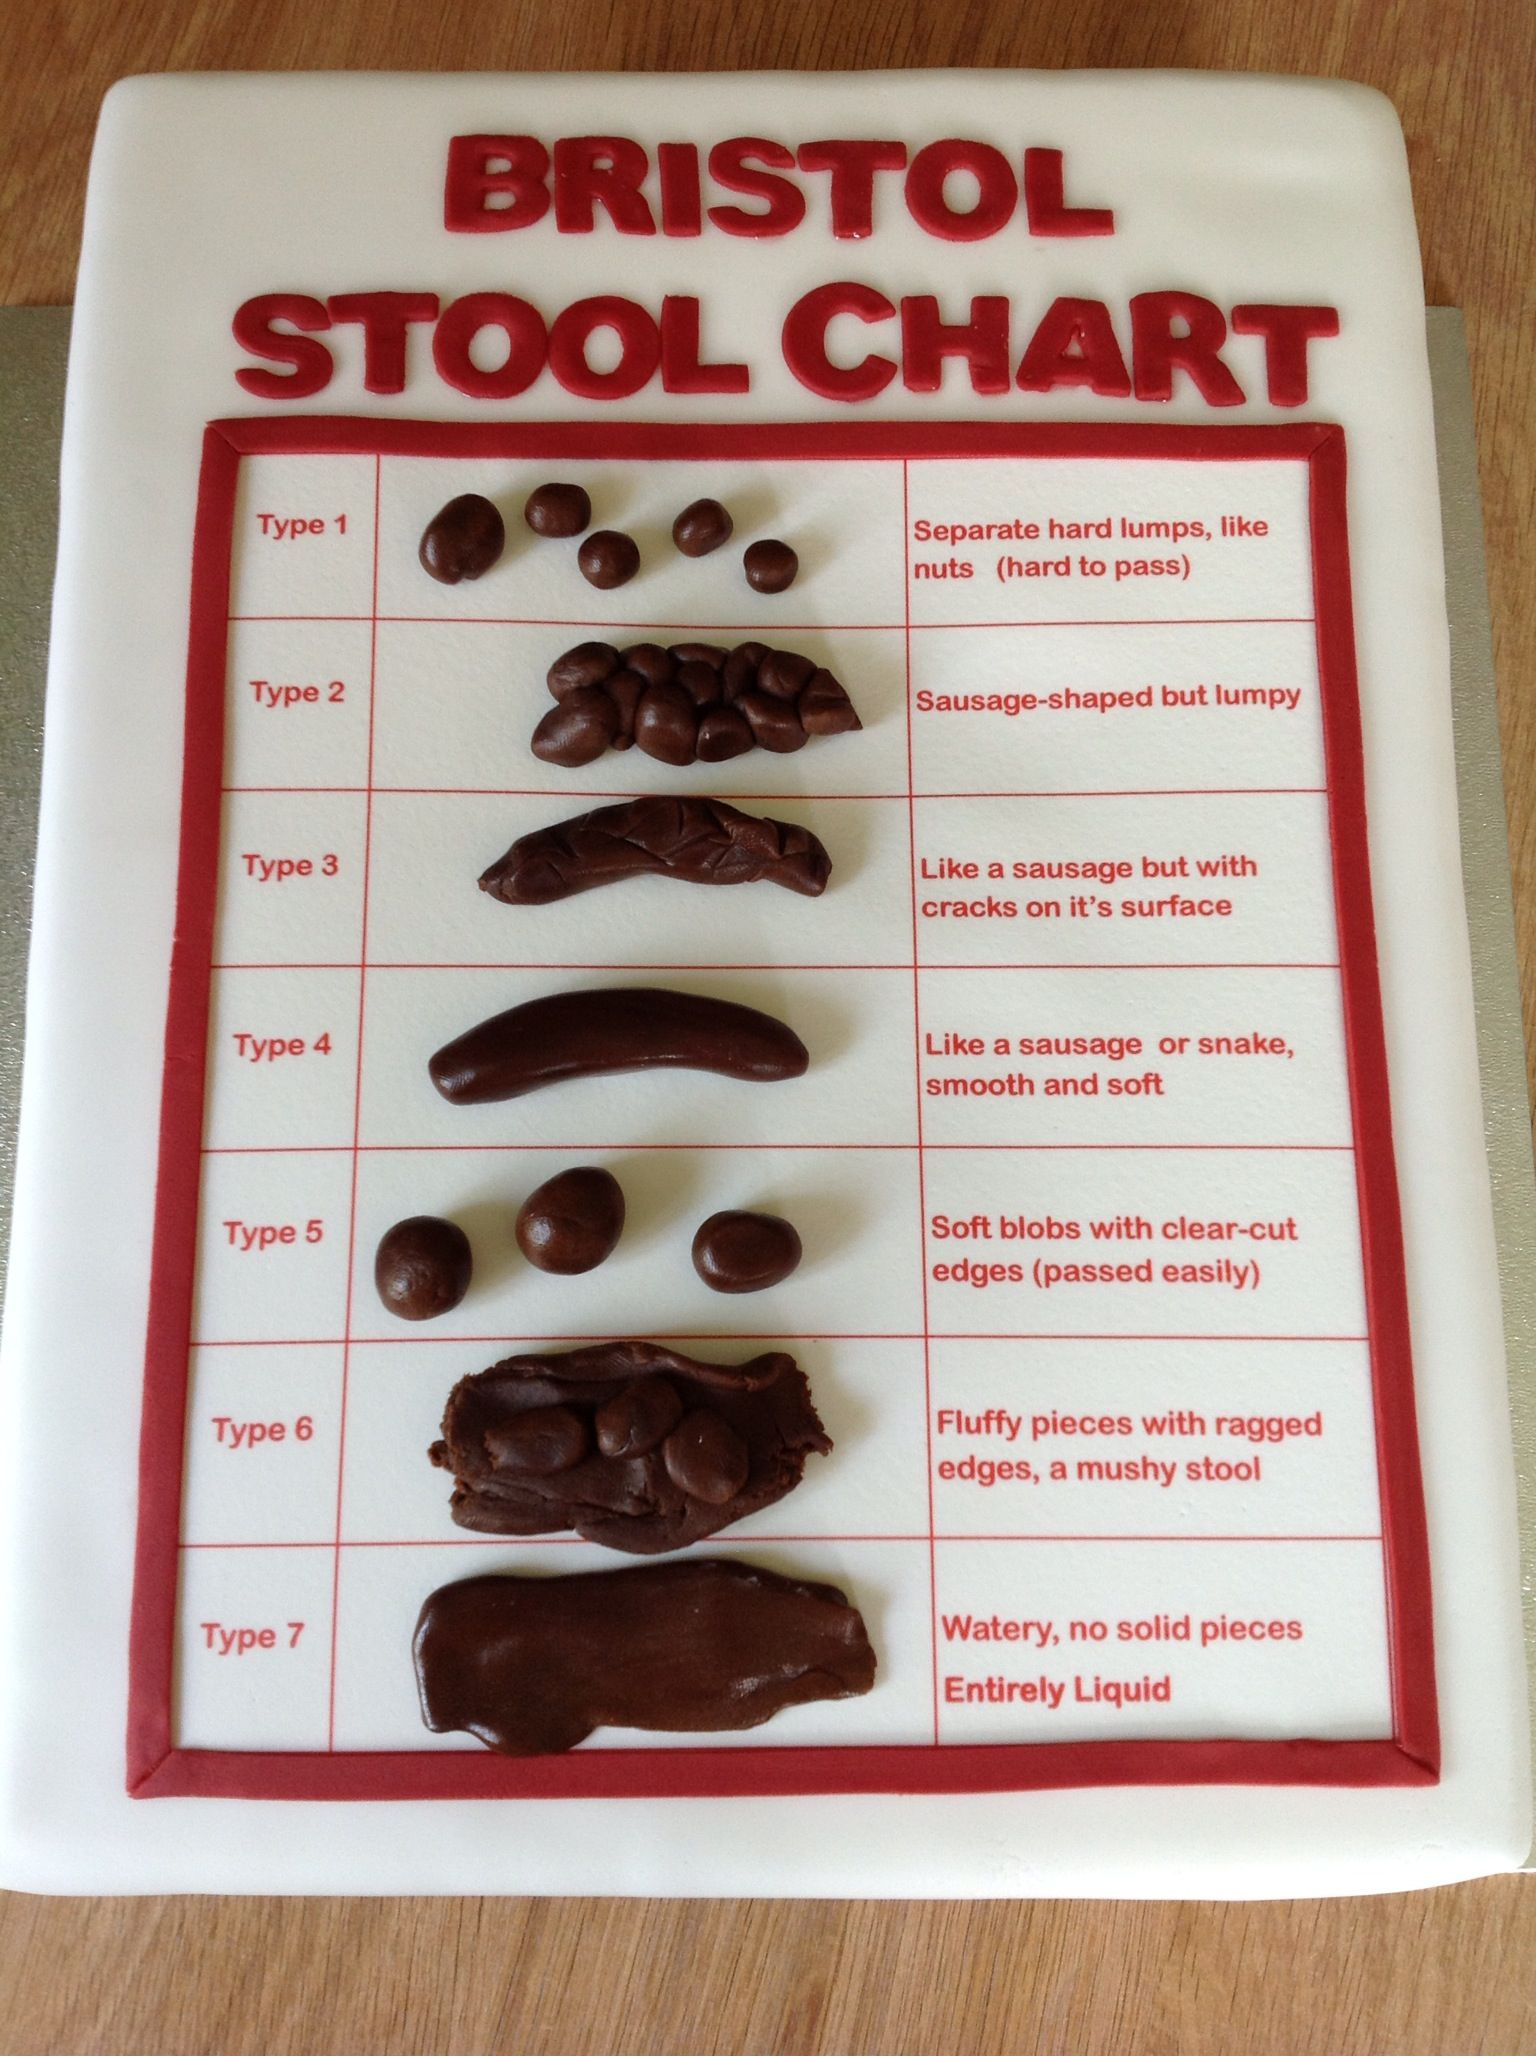 Bristol Stool Chart Cake For Nurses By Jojocupcakes Co Uk